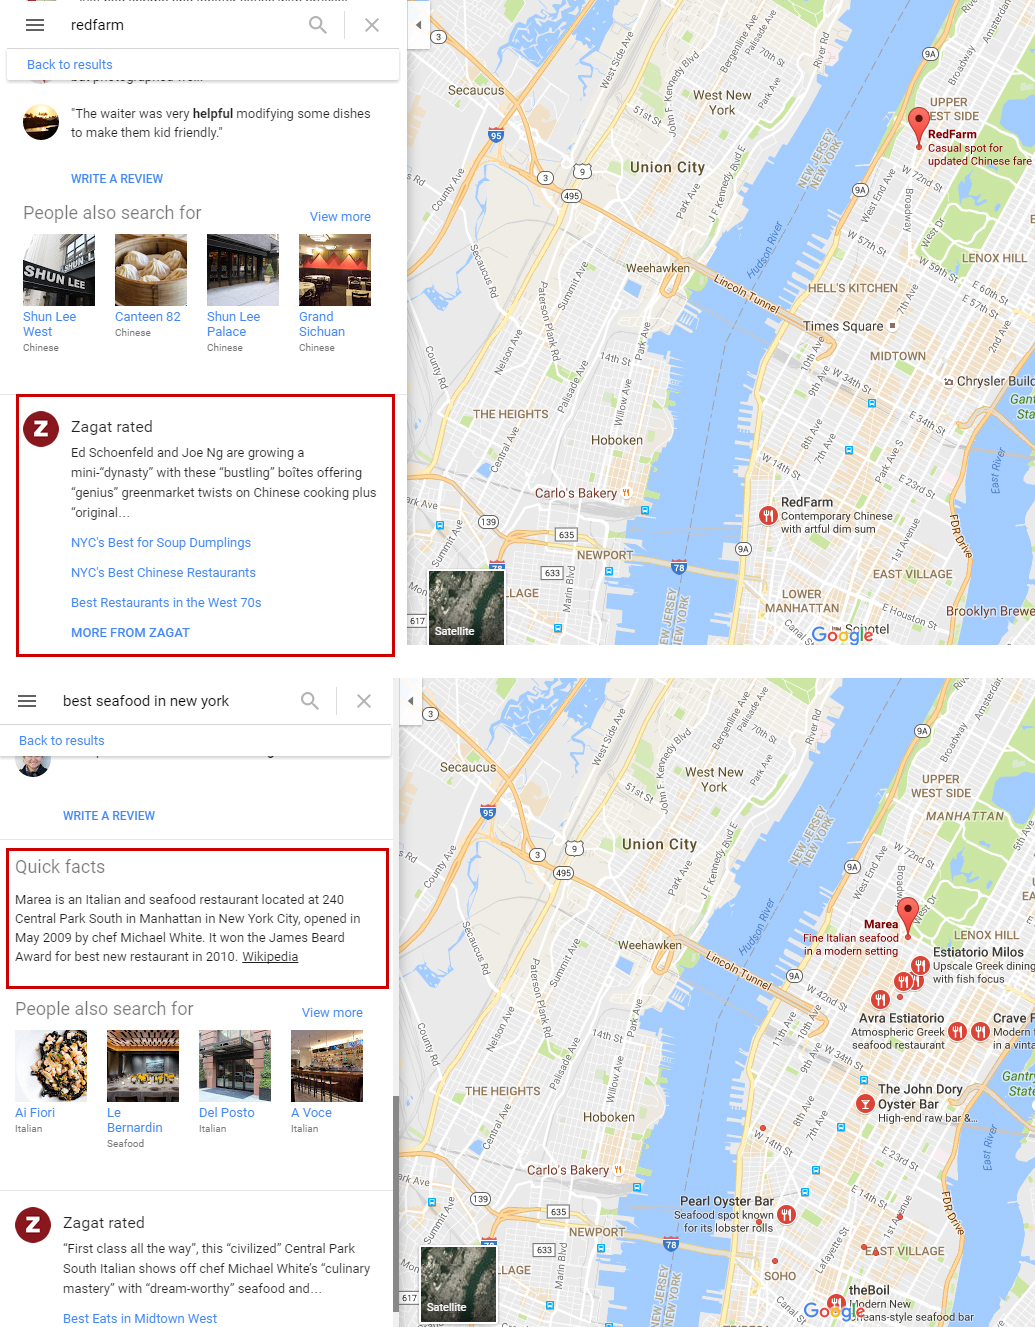 Critics Reviews on business in Google Maps